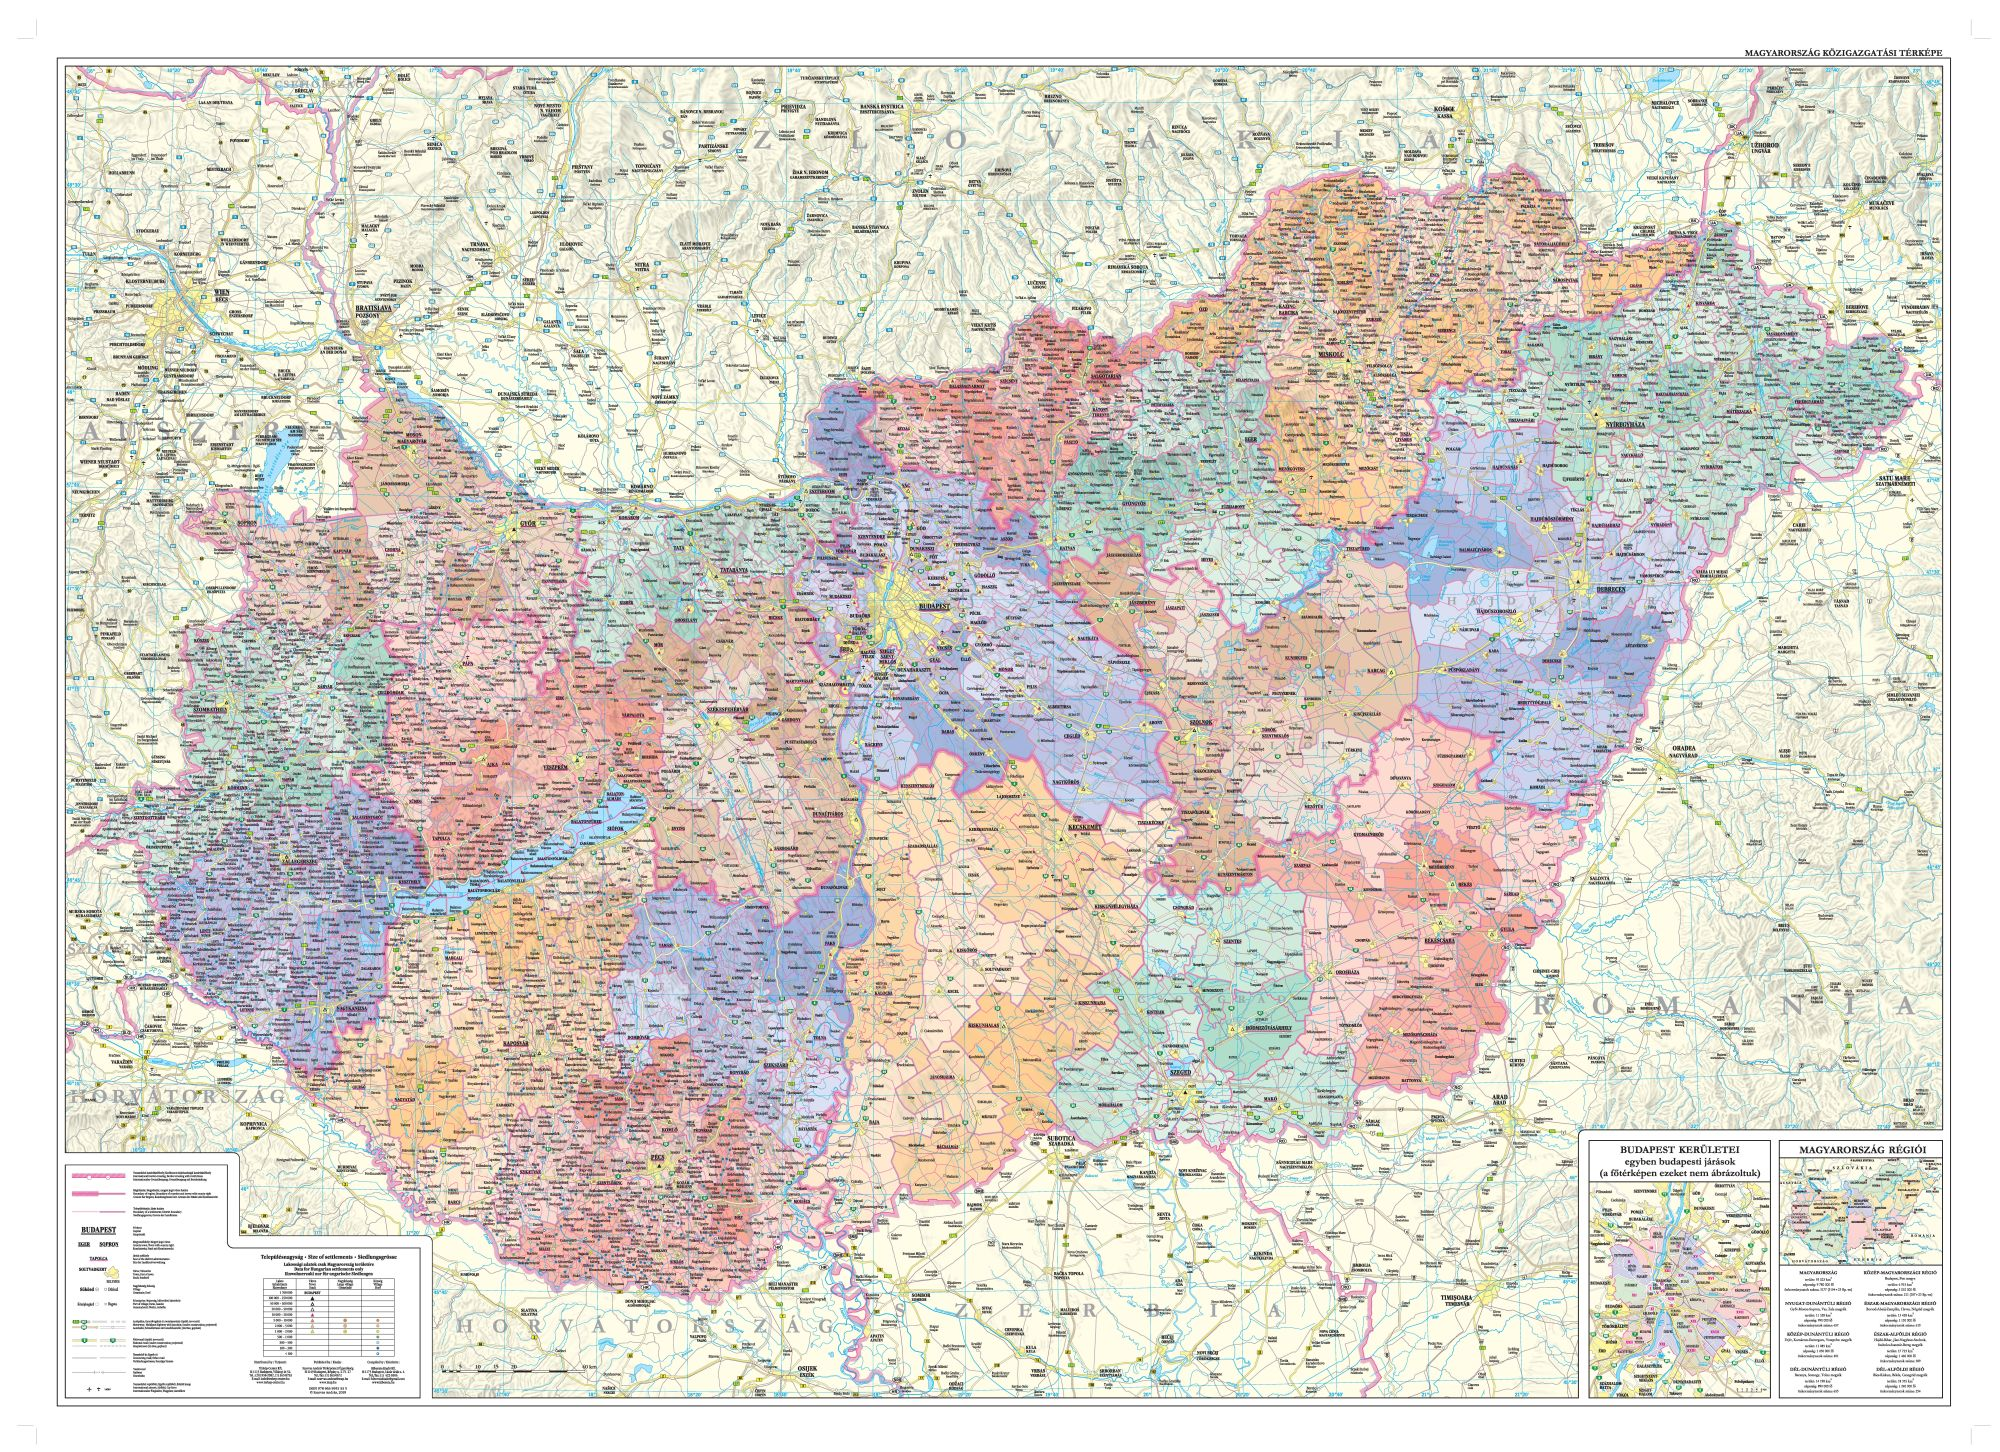 Administrative map of Hungary for mobile devices with detailed road network